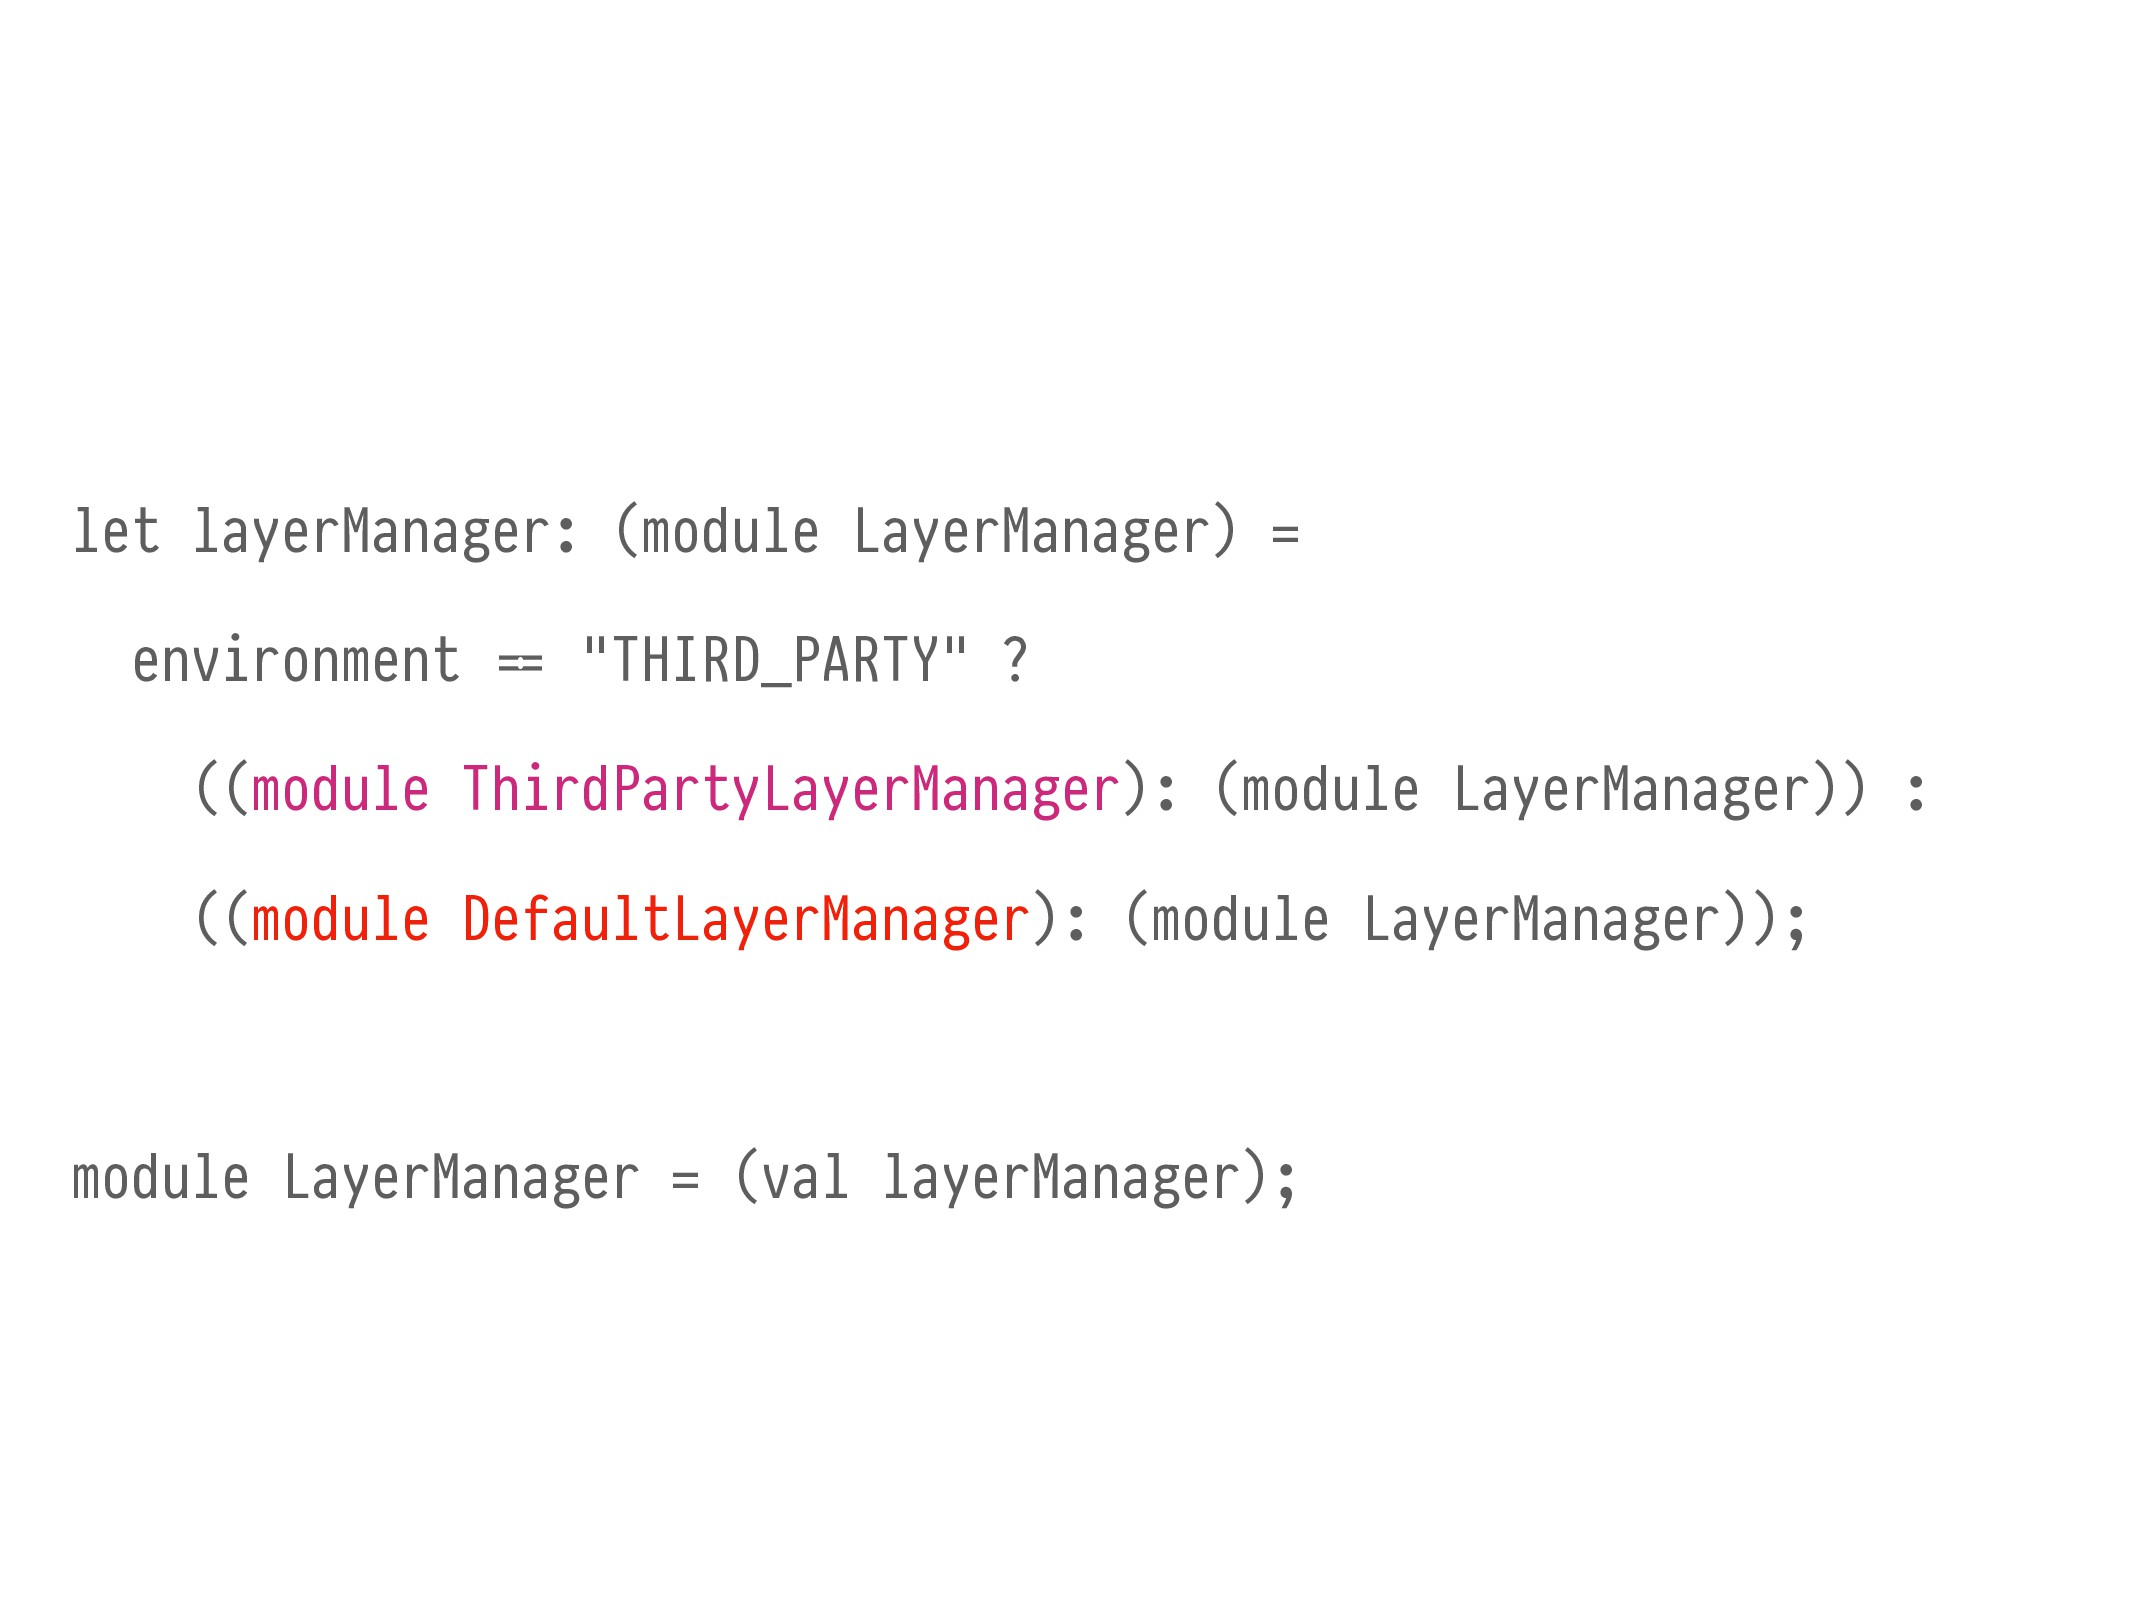 let layerManager: (module LayerManager) = envir...